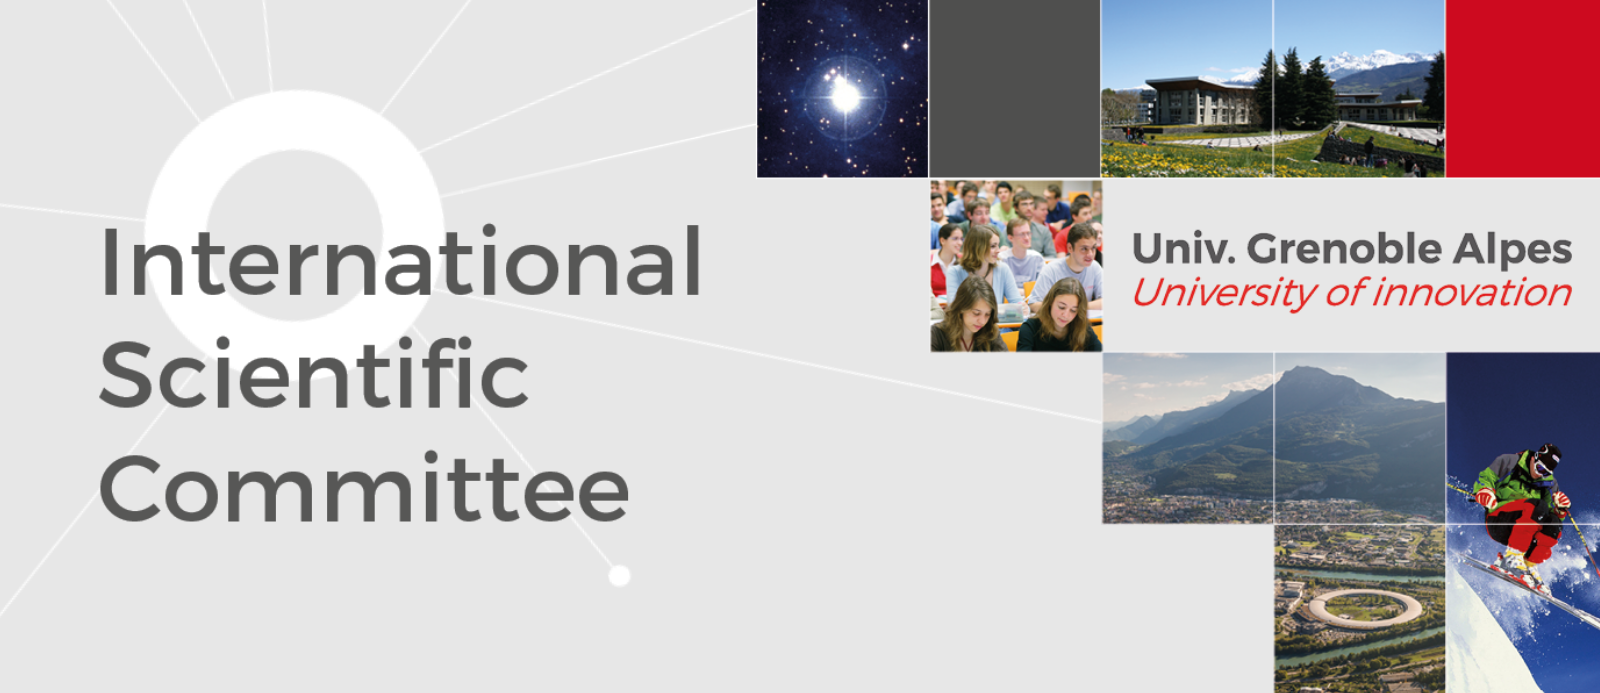 International Scientific Committee